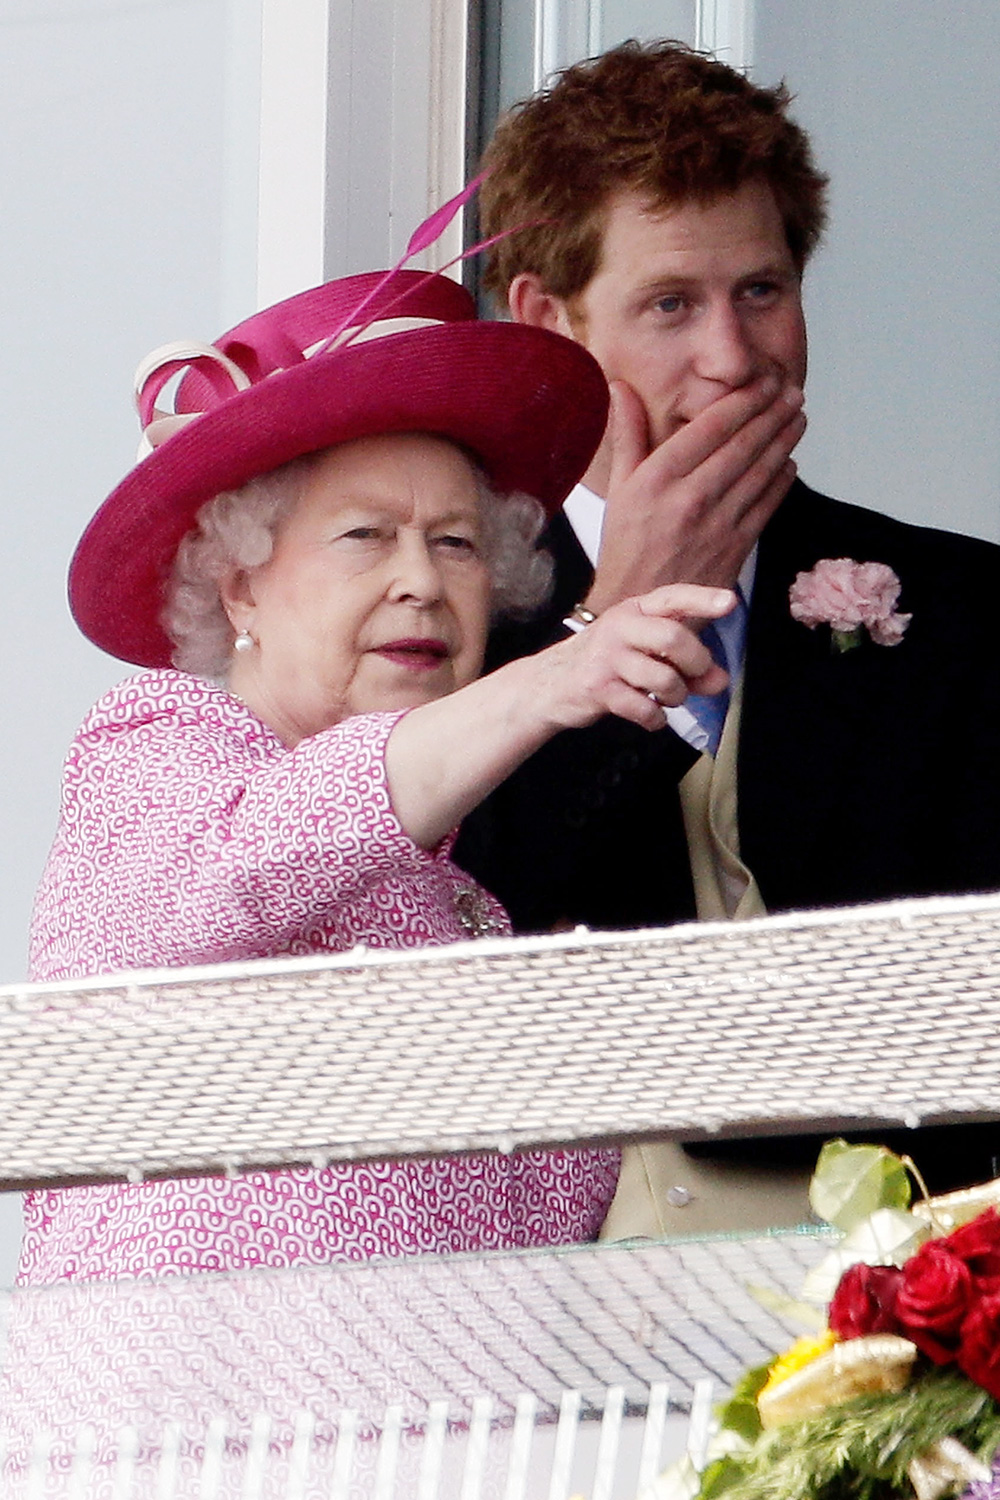 Queen Elizabeth II II and Prince Harry watch a race at Epsom Downs Racecourse on Derby Day on June 4, 2011 in Epsom, England